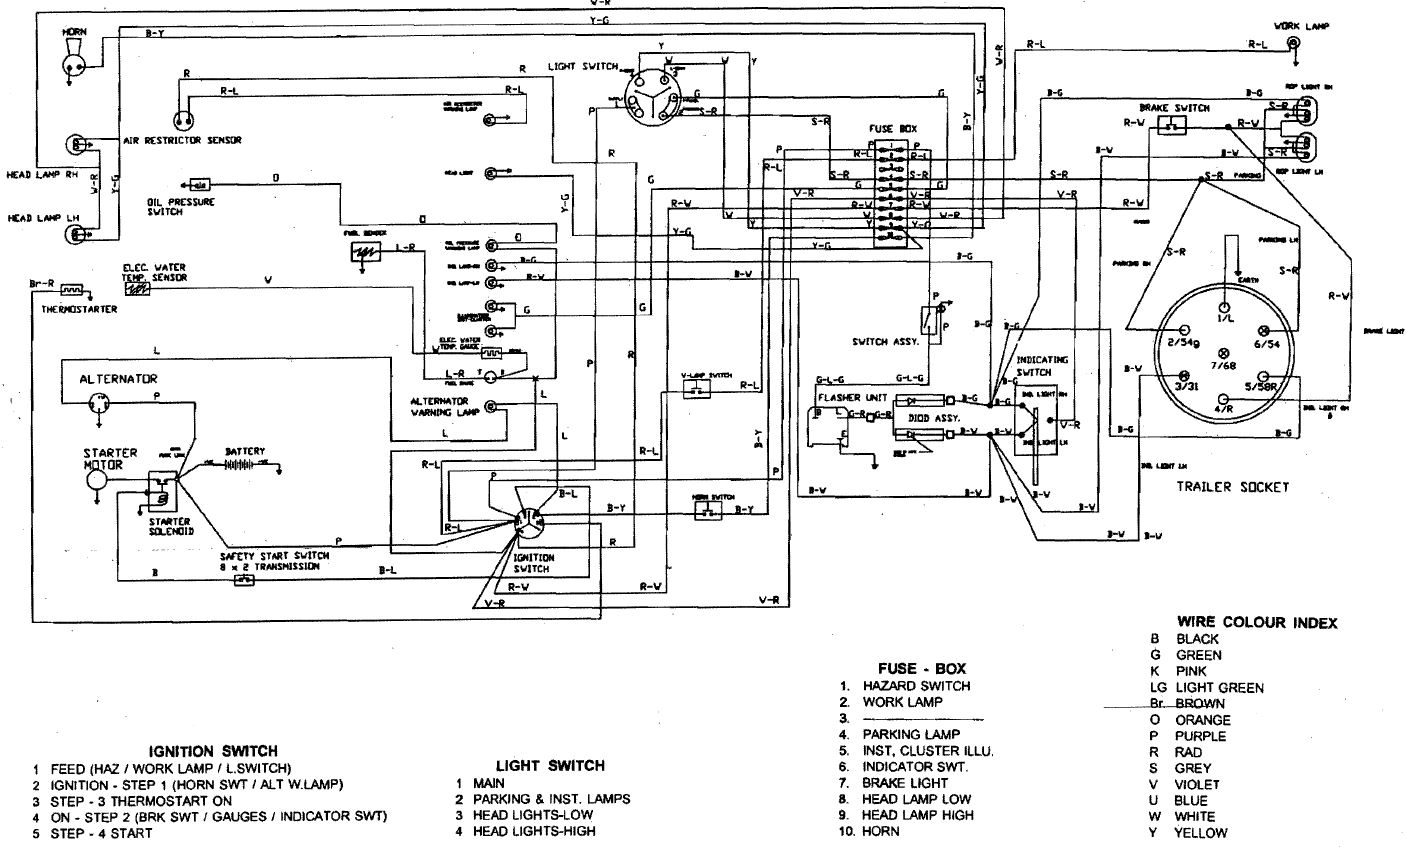 20158463319_b82d524c3d_o ignition switch wiring diagram john deere 737 wiring diagram at alyssarenee.co